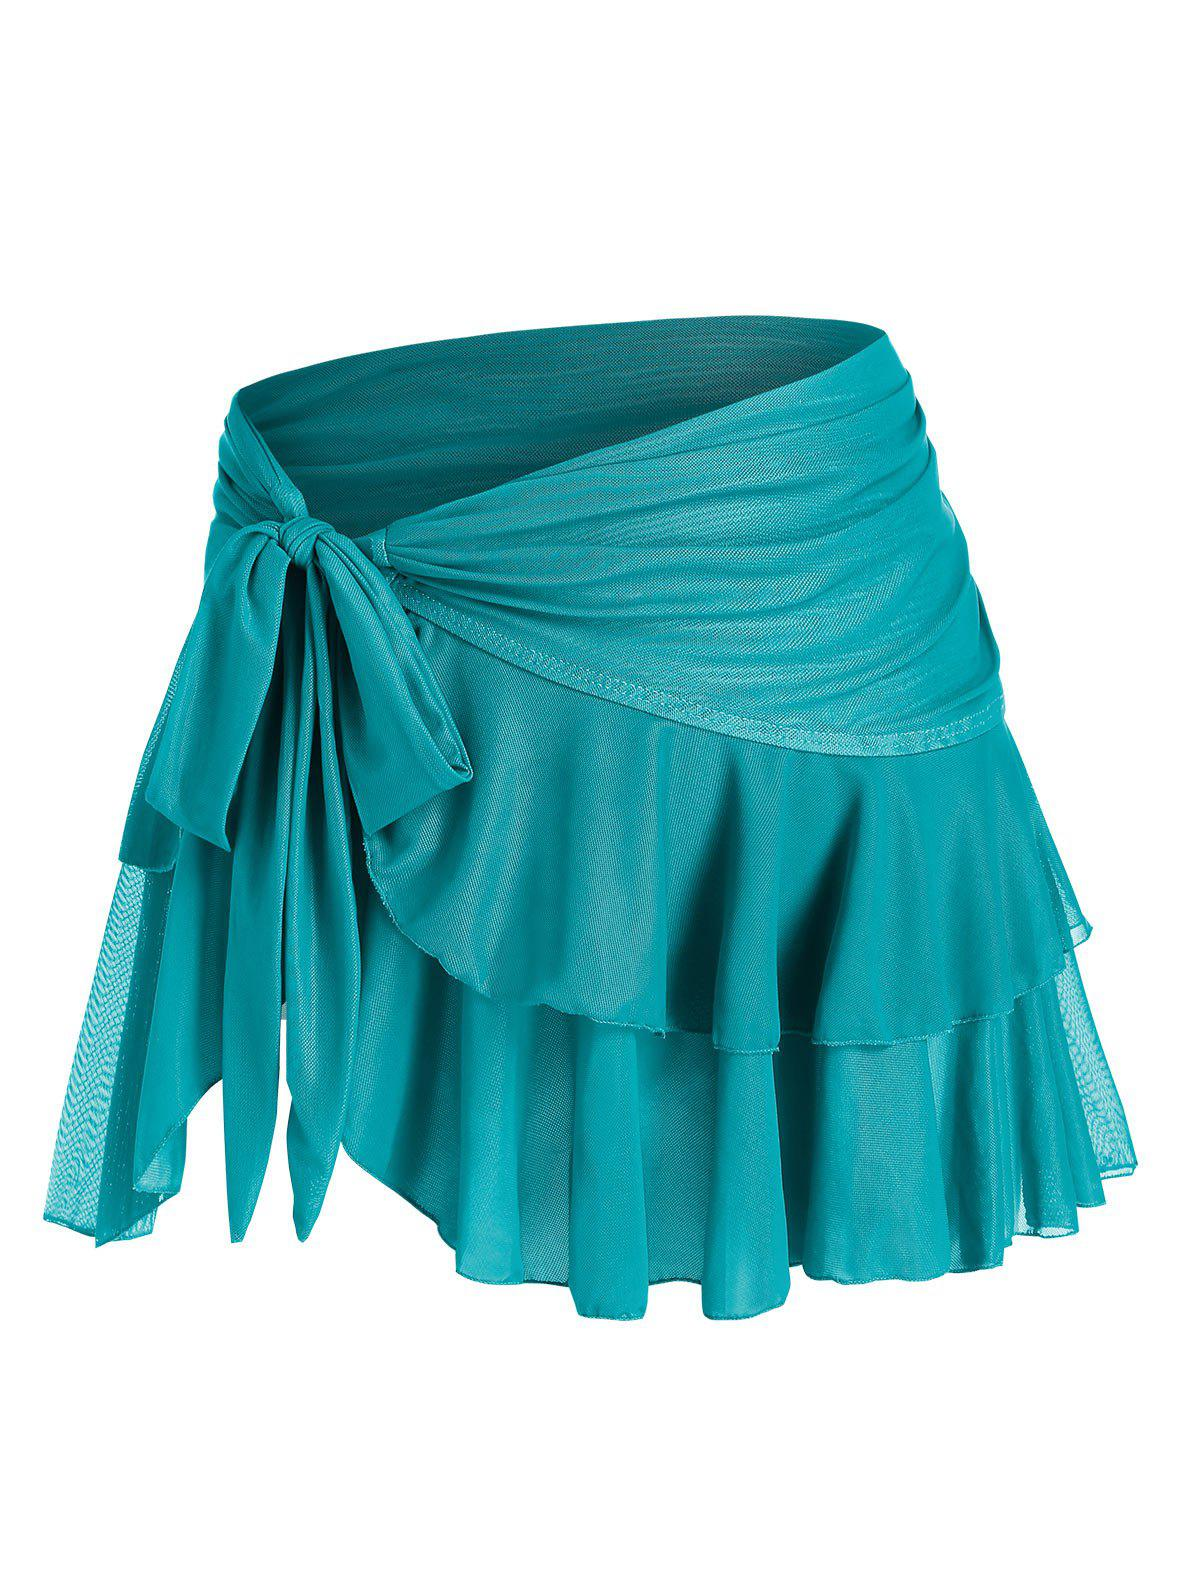 Plus Size Side Tie Layered Mesh Cover Up Skirt - BLUE 1X